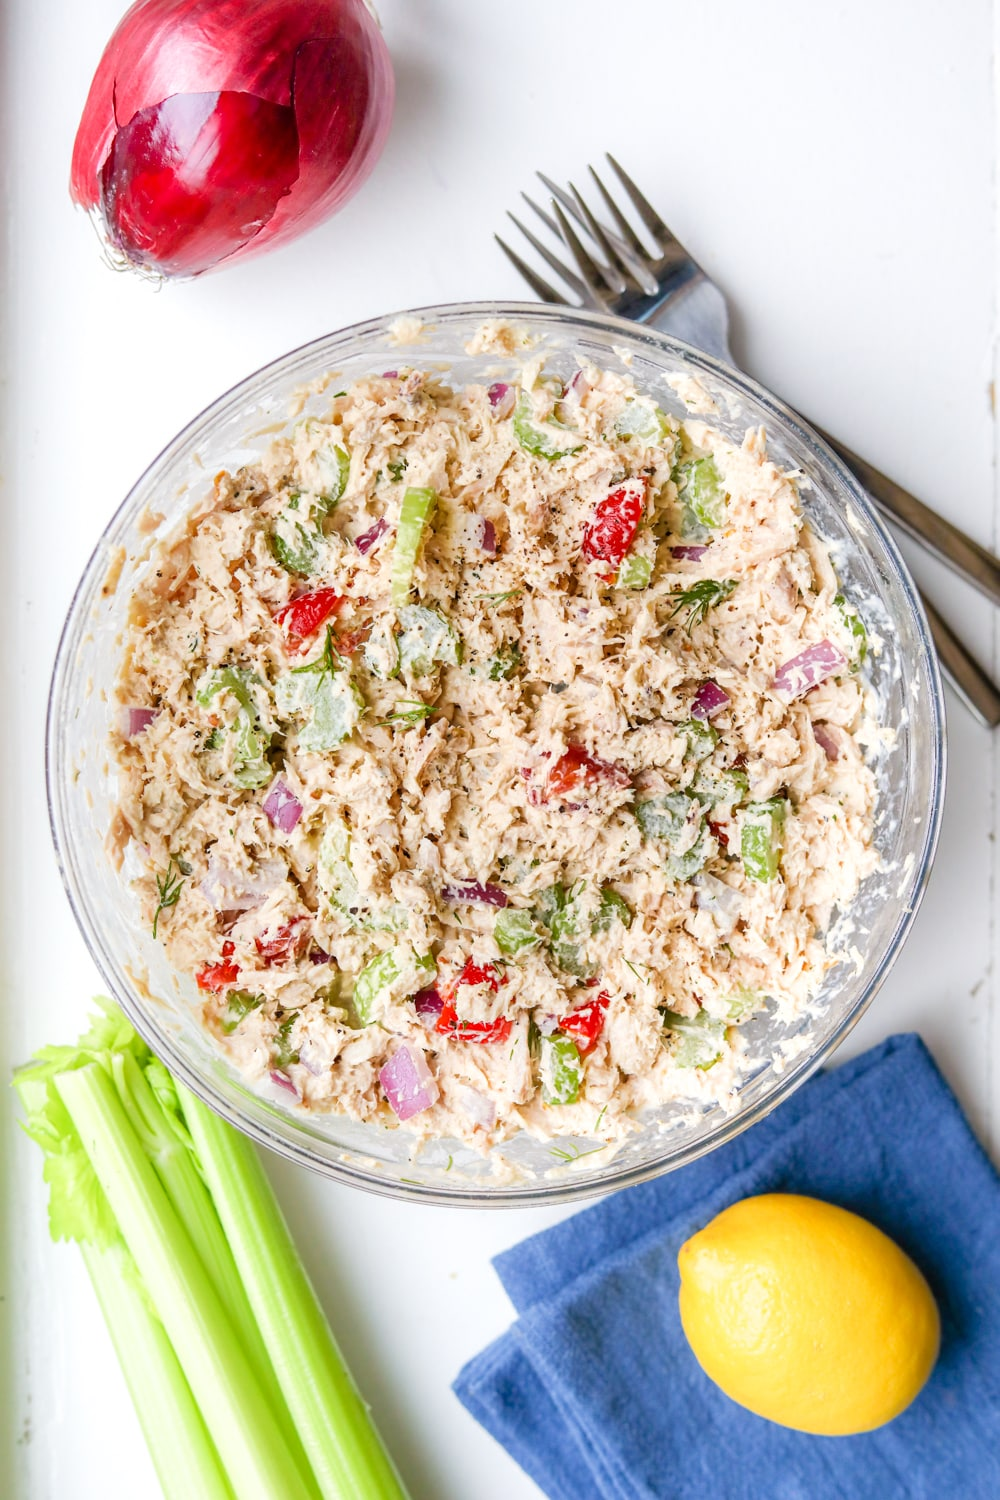 A large bowl of keto tuna salad with vegetables, a lemon, and two forks next to it.